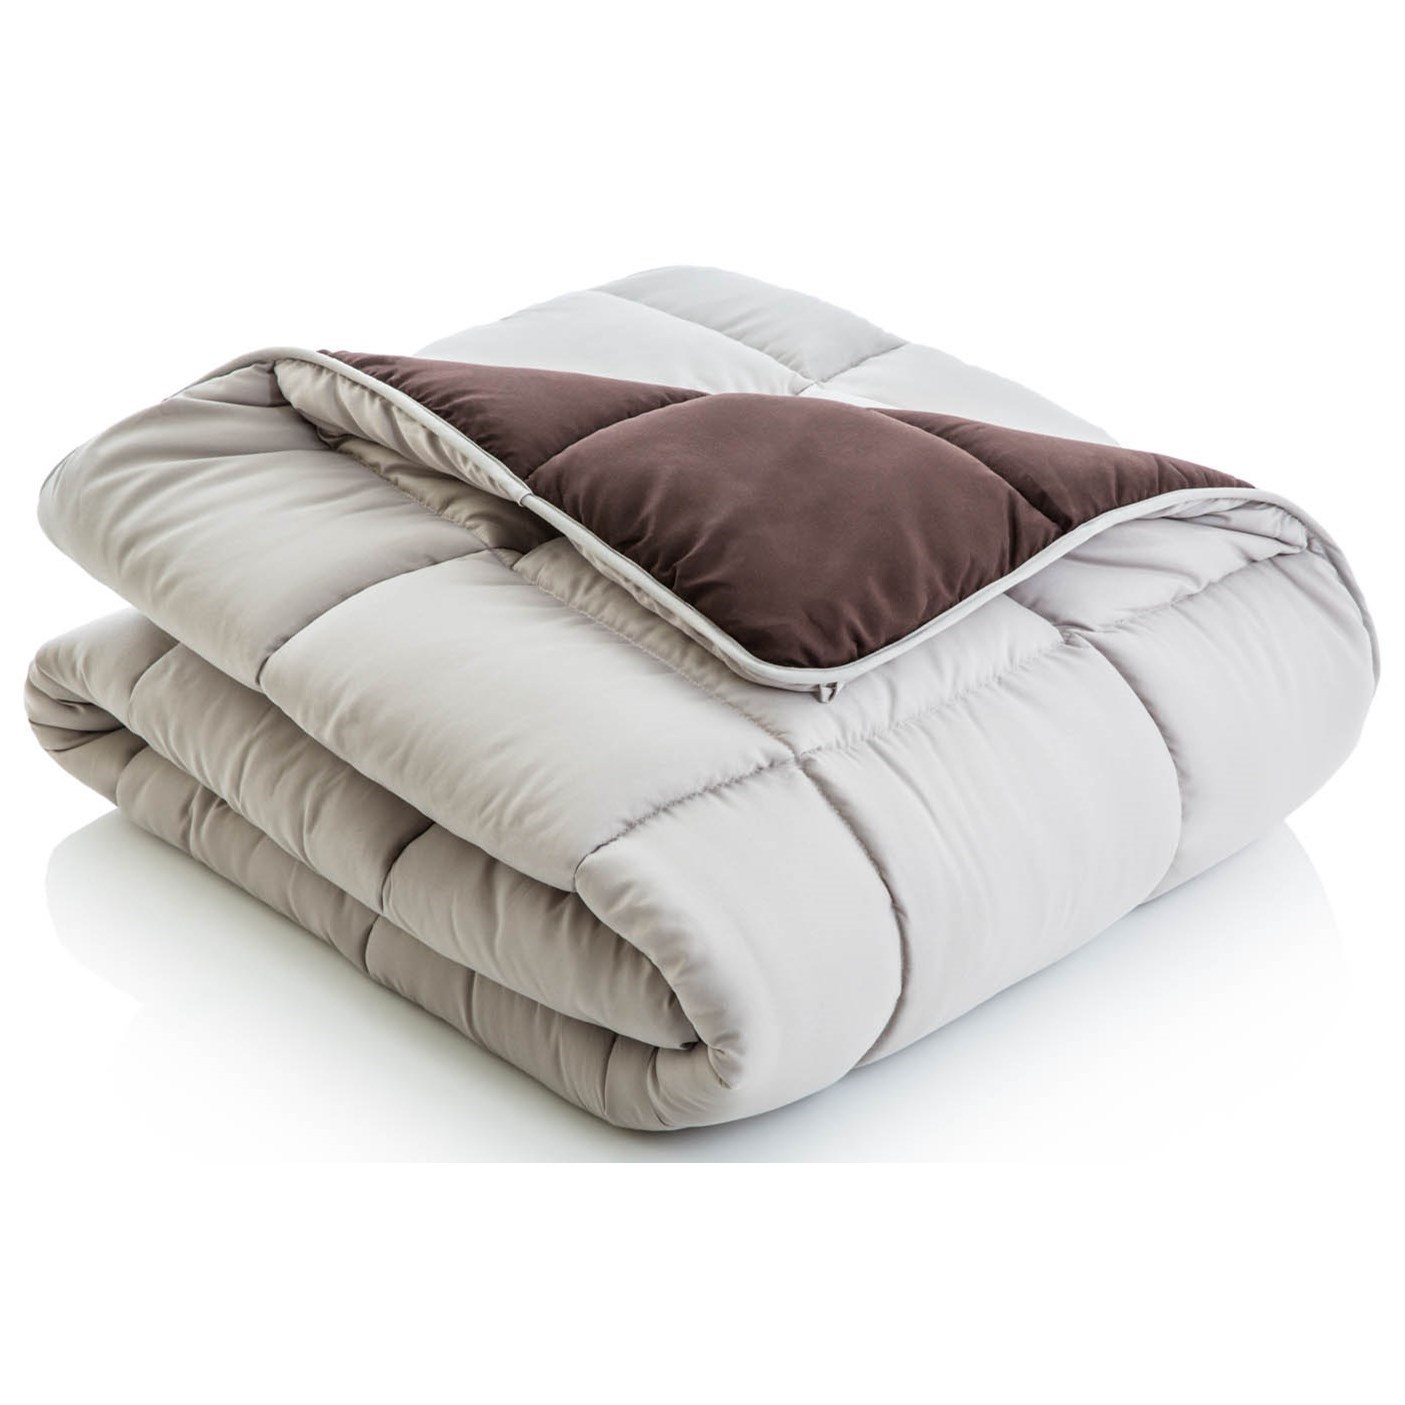 Malouf Reversible Bed in a Bag Twin Reversible Bed in a Bag - Item Number: MA01TTDRCOBB